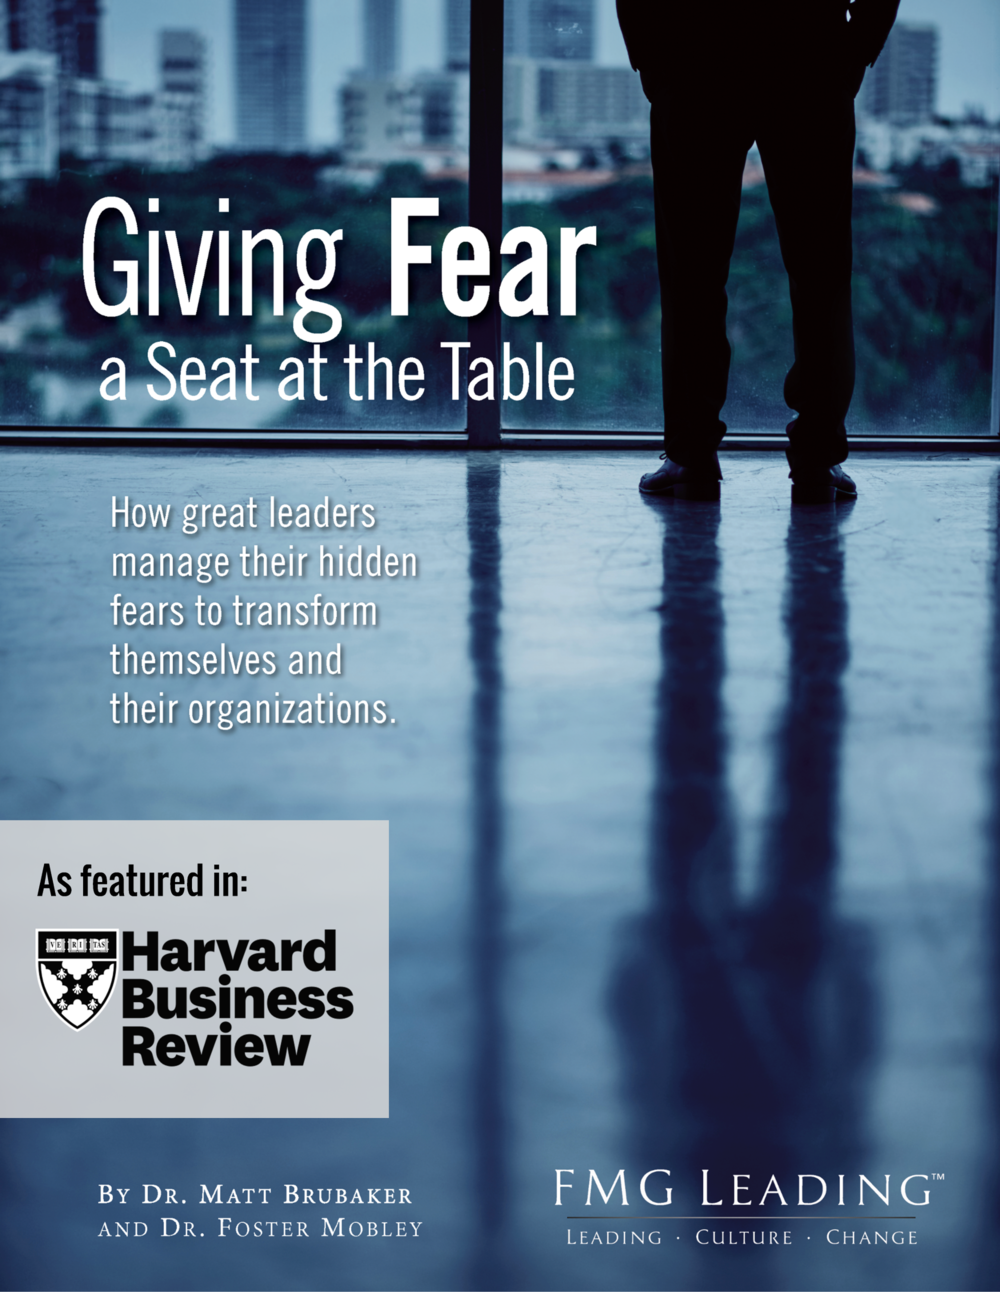 FMG Leading Giving Fear a Seat at the Table